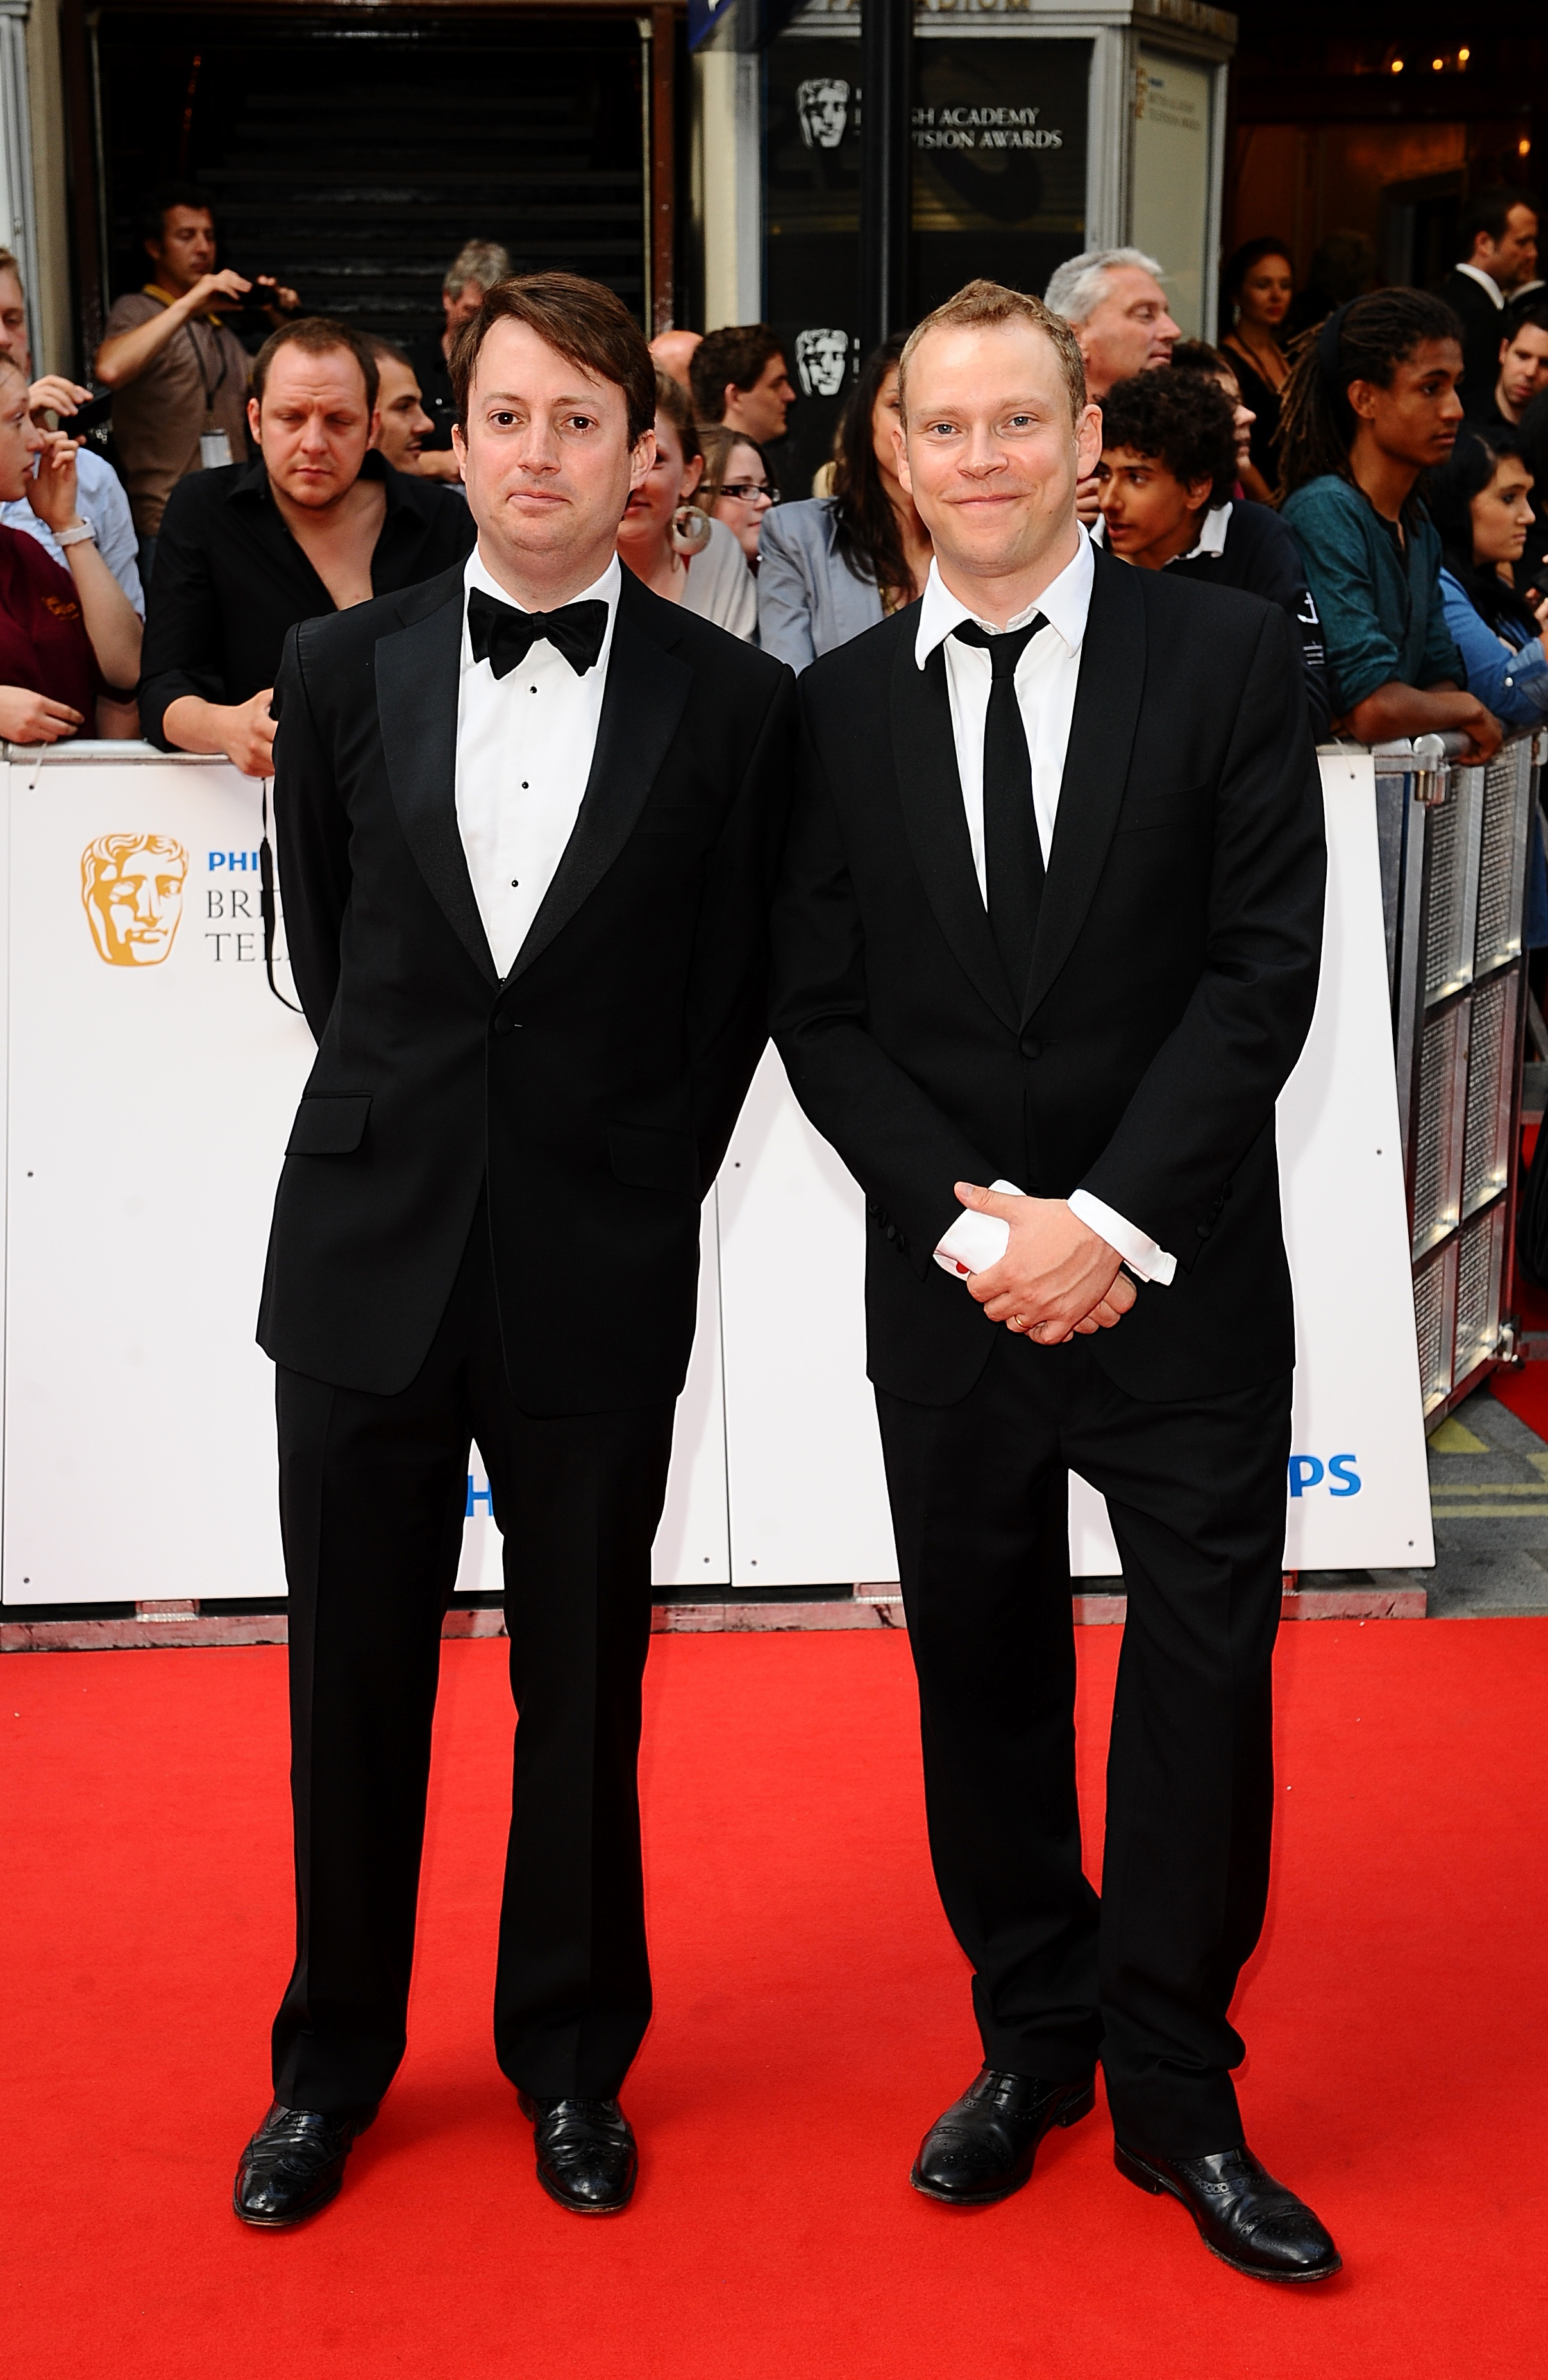 david mitchell its nice working with robert webb �after